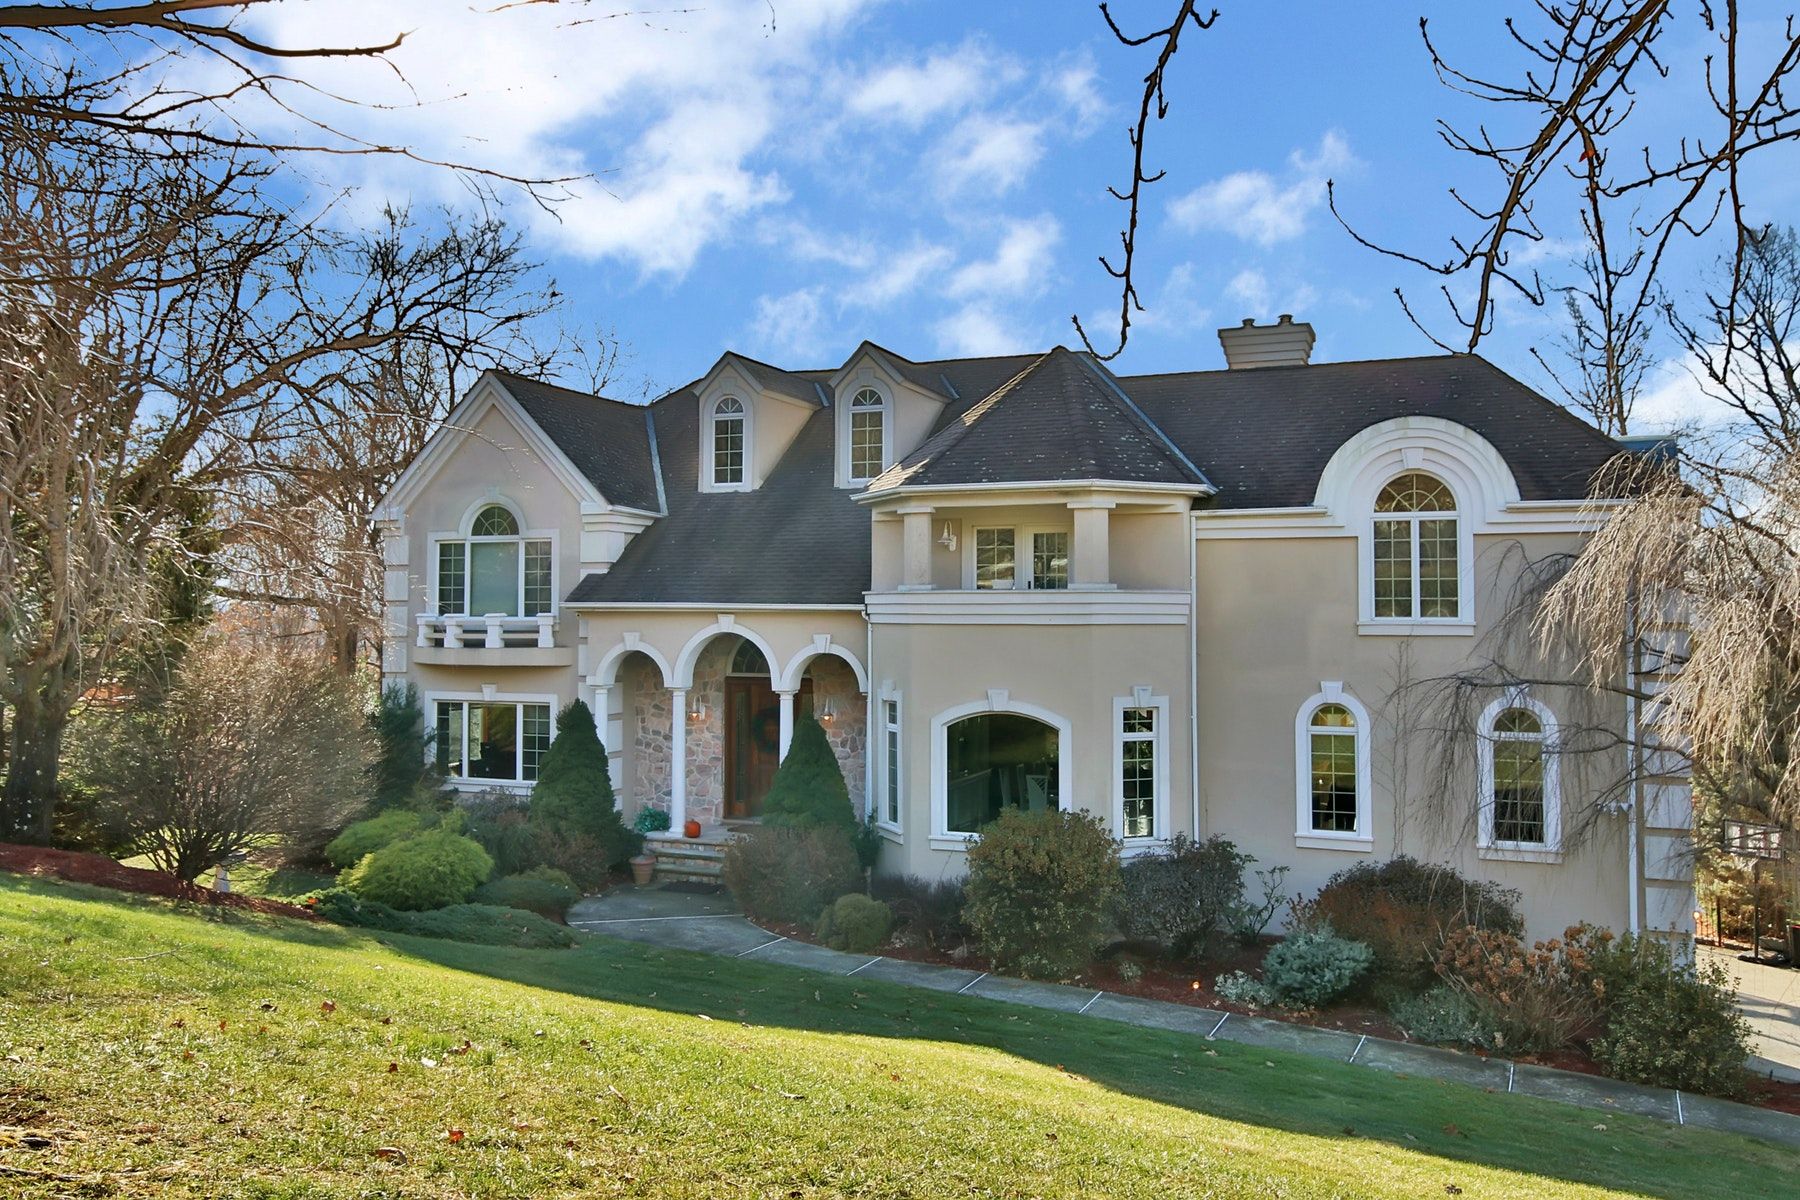 Single Family Home for Sale at Prestigious Vizcaya Estate 4 Vizcaya Court Wayne, New Jersey 07470 United States